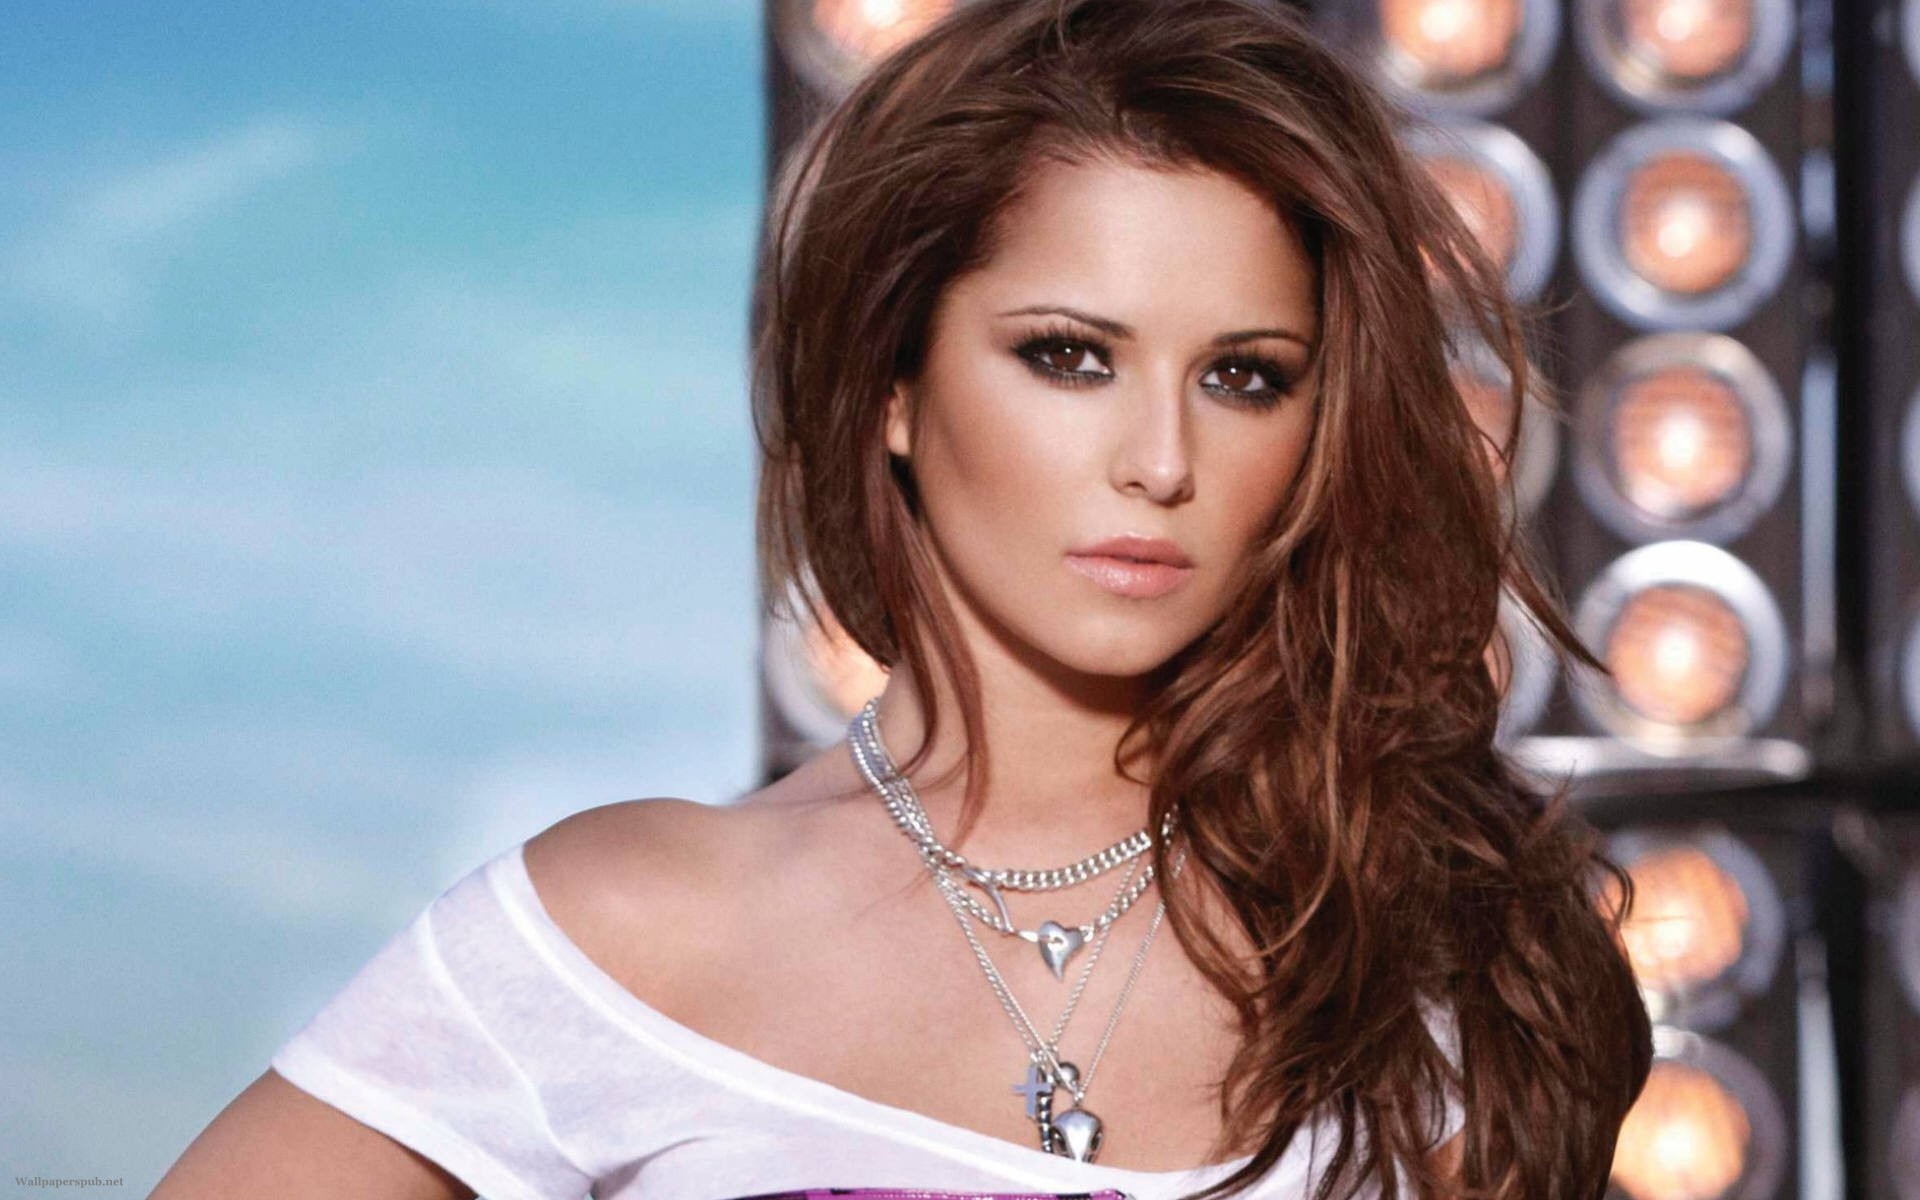 Cheryl Cole Wallpapers Images Photos Pictures Backgrounds